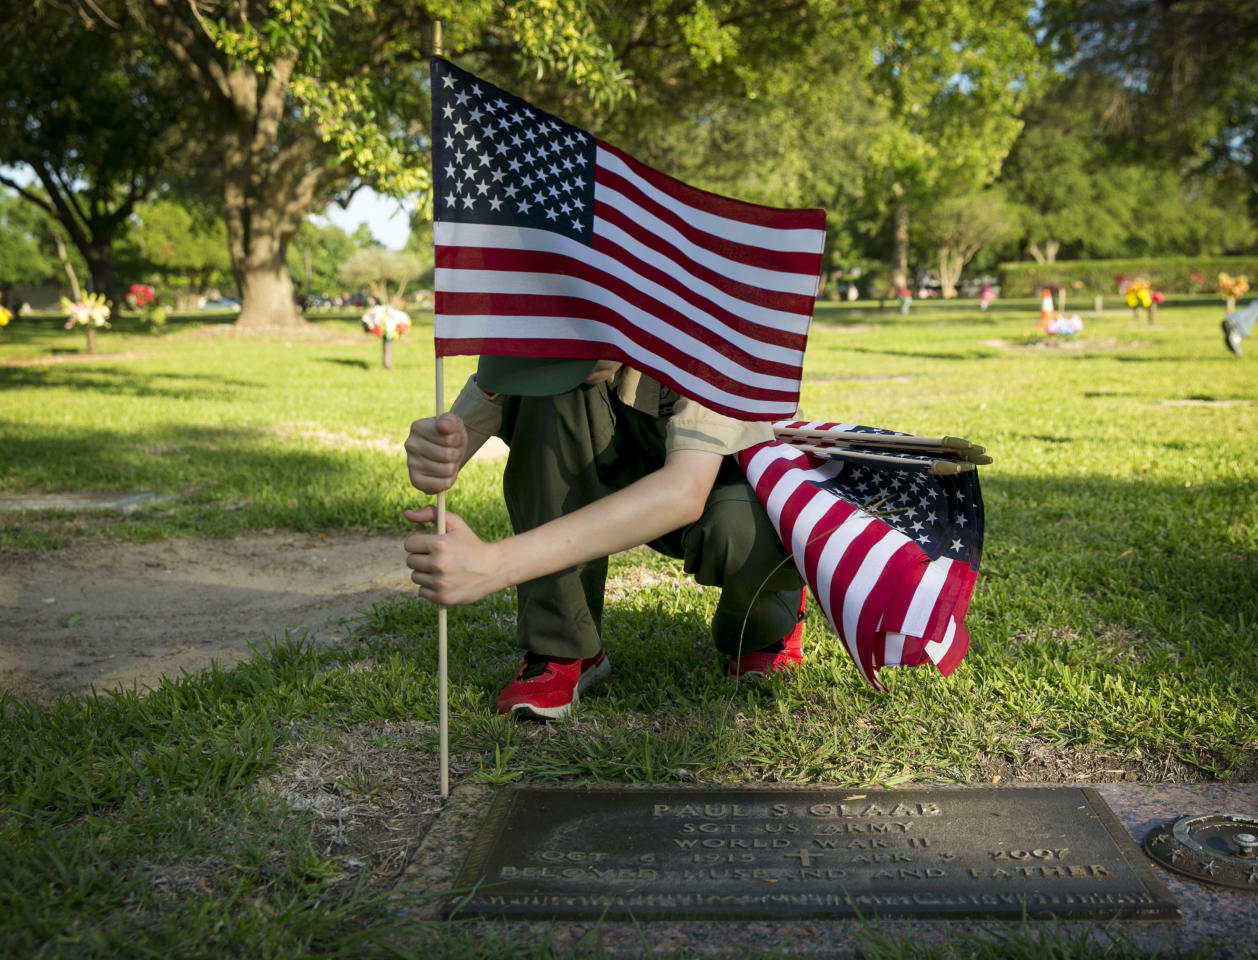 <p>Nathan Thom, 12, of BSA Troop 8787, places a U.S. flag on the grave of a veteran at the Cook-Walden Capital Parks Cemetery in Pflugerville, Texas, on Saturday May 26, 2018. For nearly 20 years, the scouts in the troop, which is chartered with VFW Post 8787, have gathered on the Saturday before Memorial Day to place about 5,000 flags on graves to honor veterans. (Photo: Jay Janner/Austin American-Statesman via AP) </p>